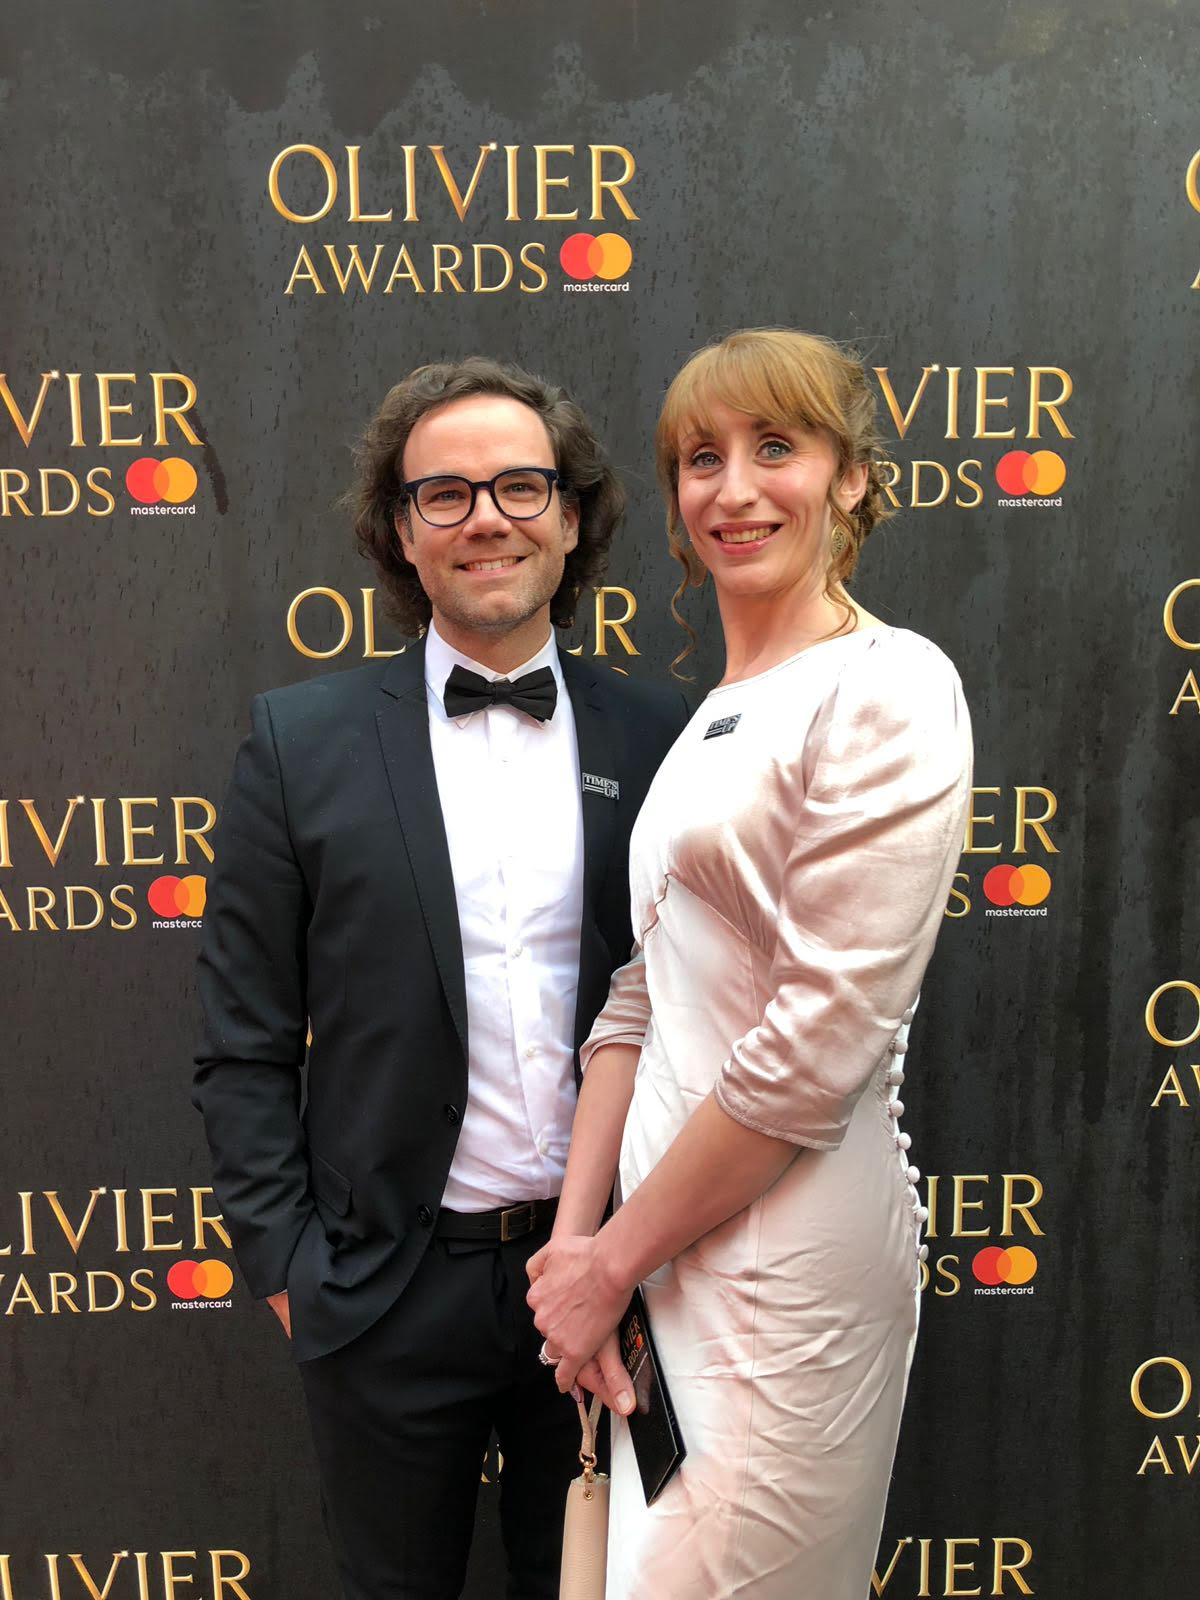 Myself and Adam Spreadbury Maher (Artistic Director of the King's Head Theatre) on the red carpet.